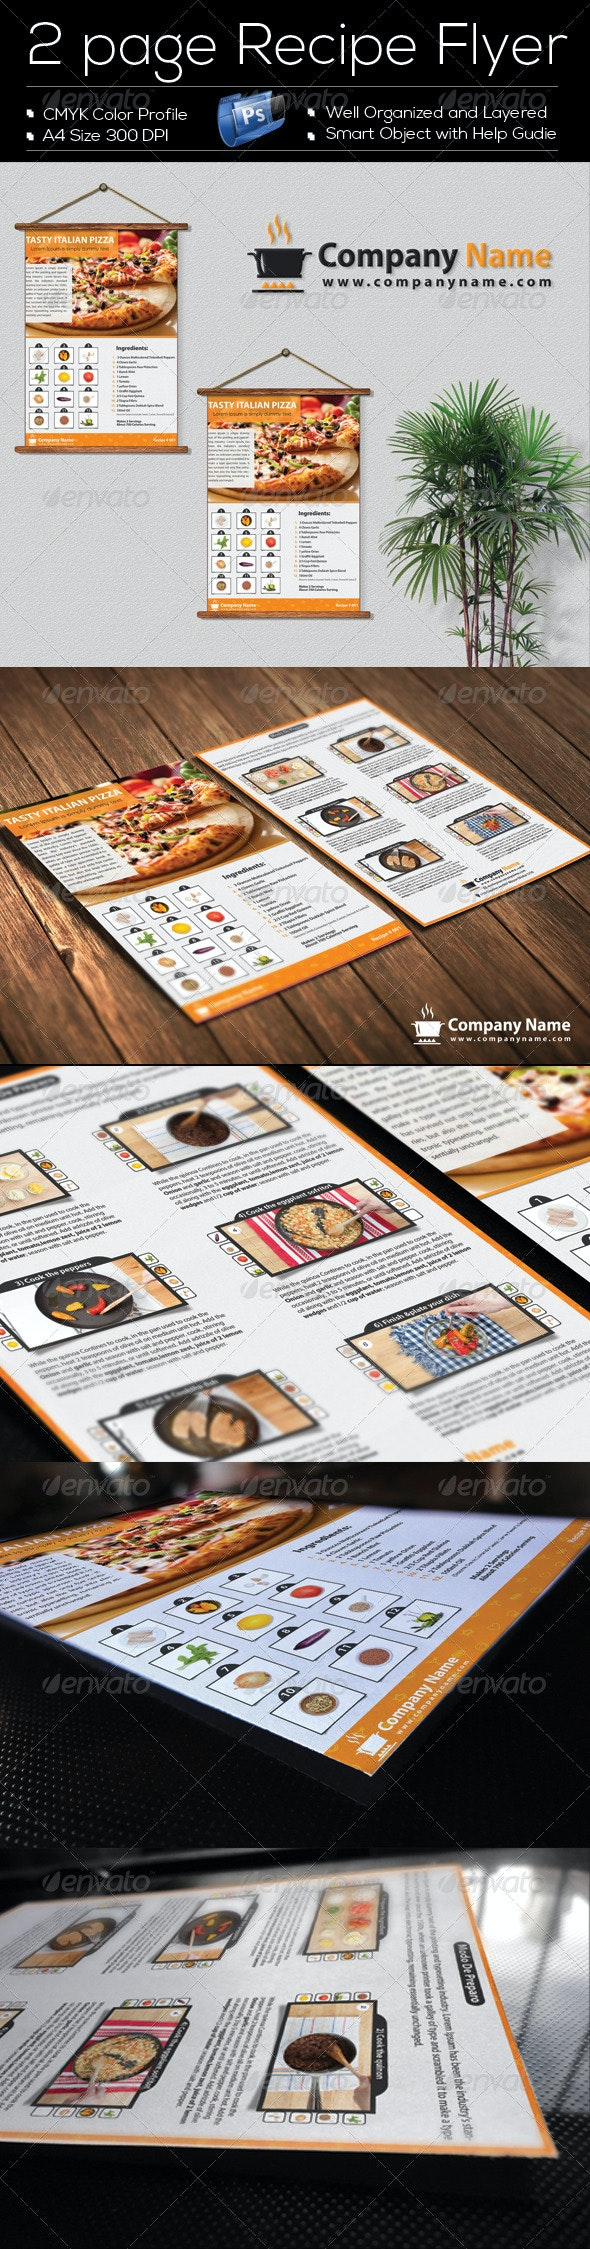 2 Page 'Recipe Flyer' Template Design - Restaurant Flyers